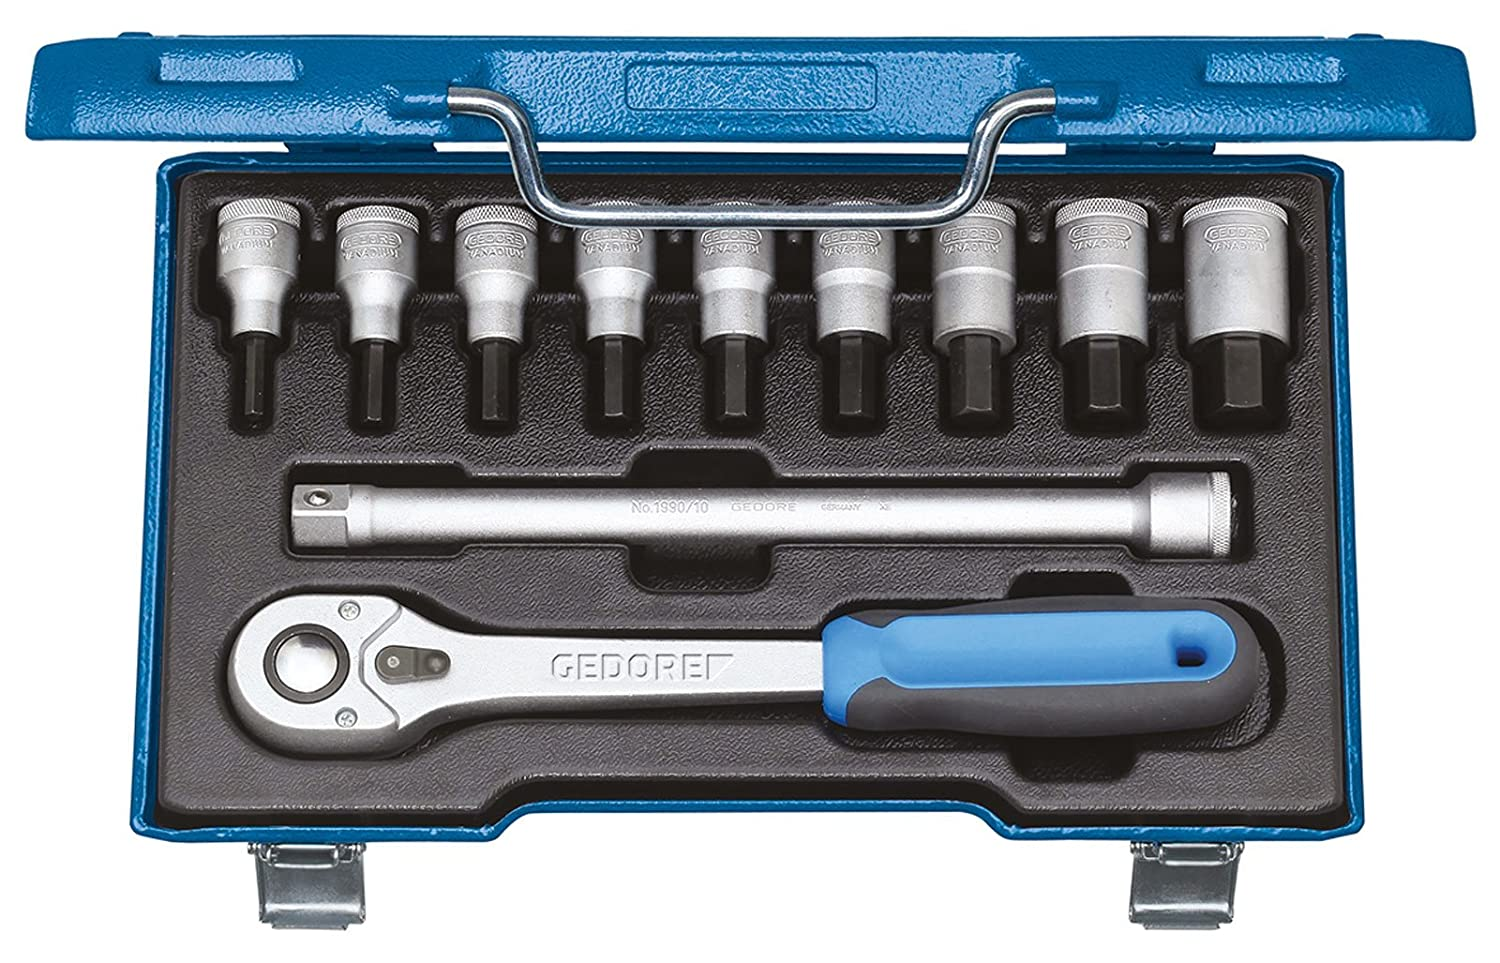 GEDORE 25 PK 10 Double Ended Socket Wrench 10 mm